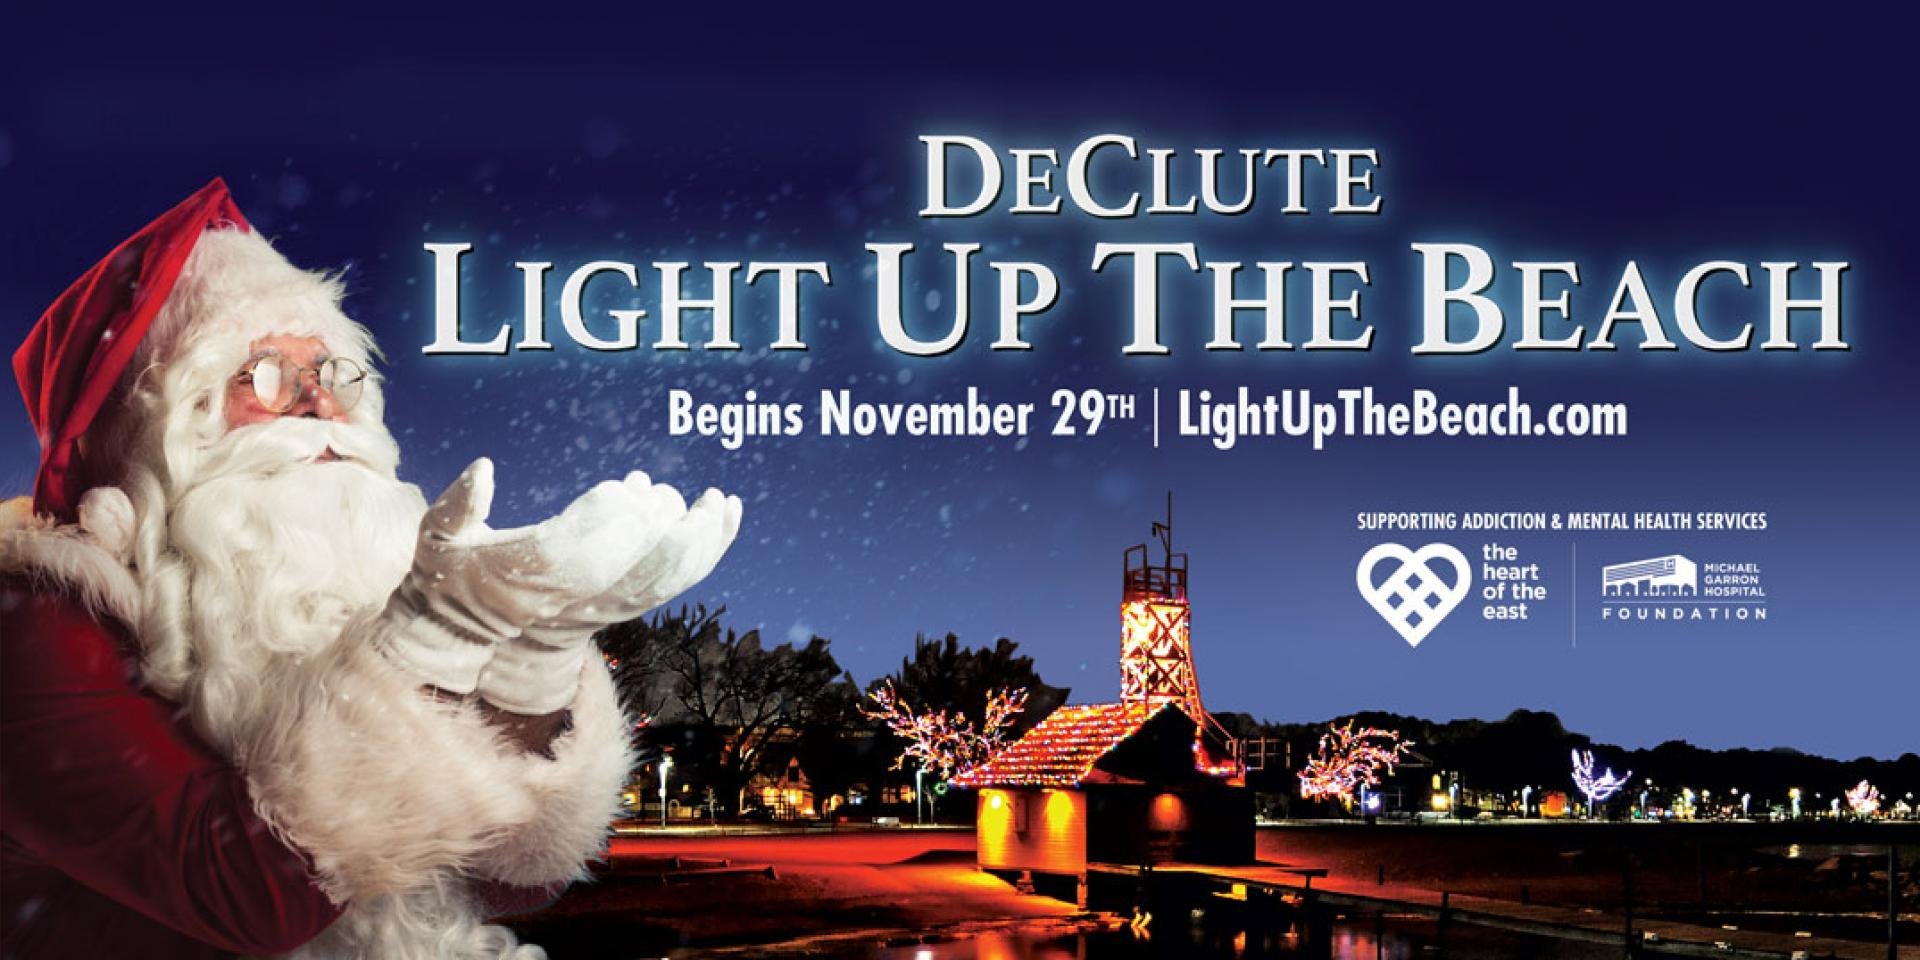 DeClute Light up the Beach begins November 29th at 7pm